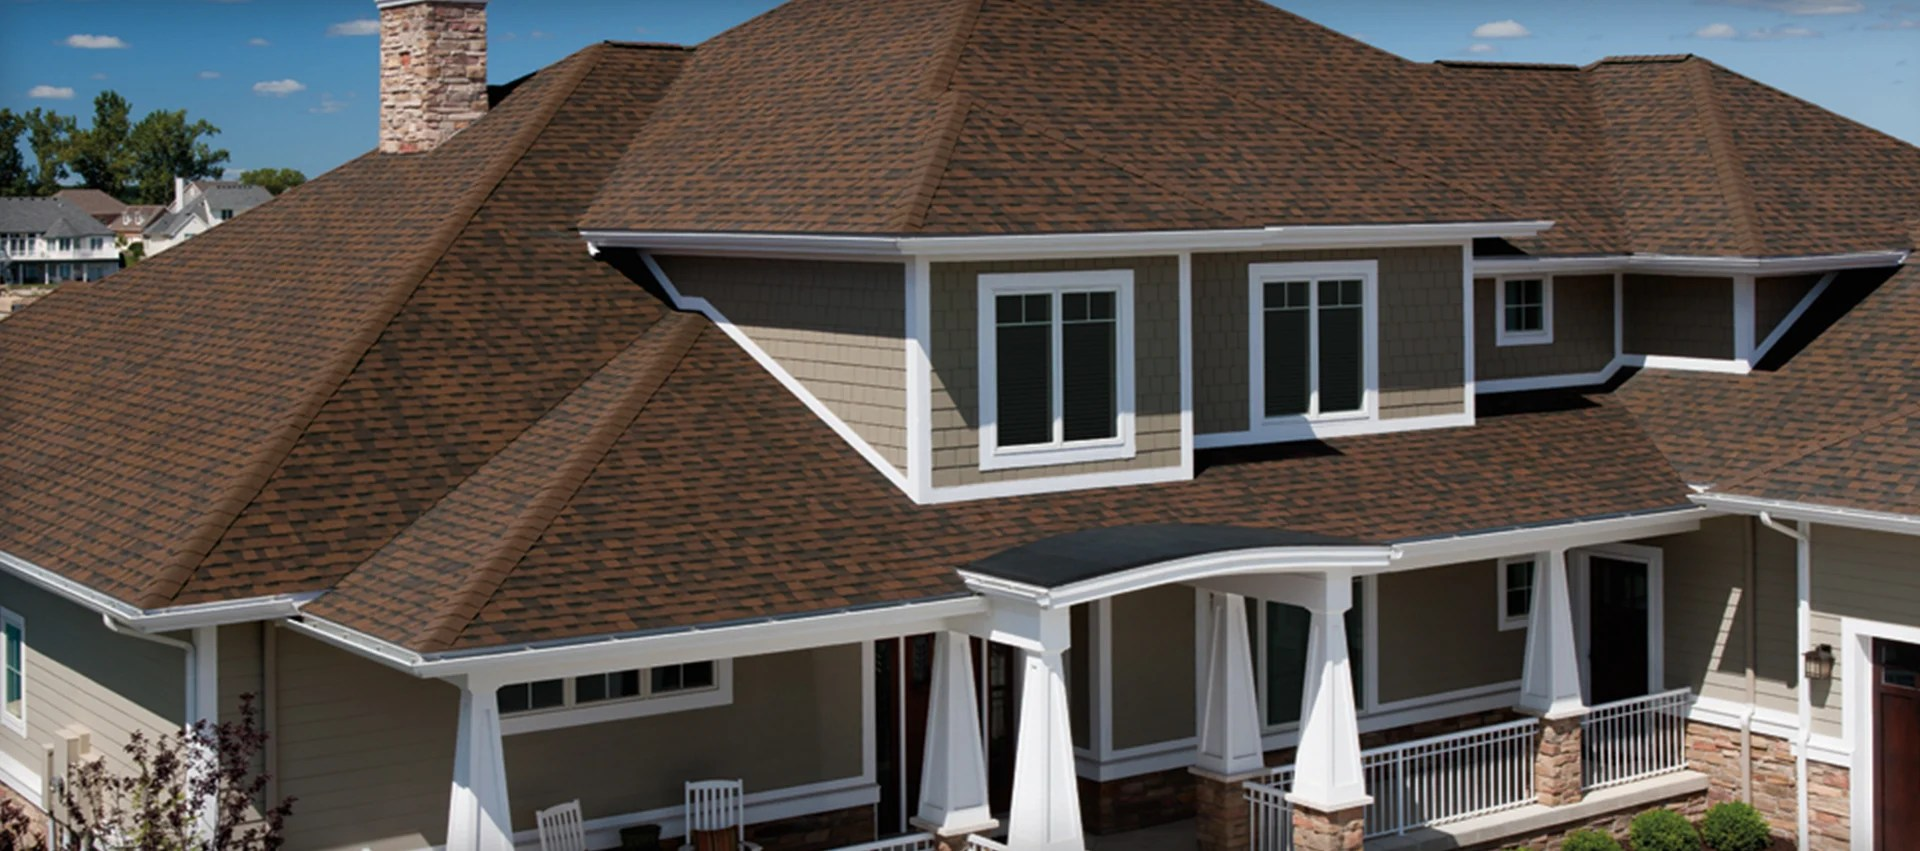 siding windows doors and more